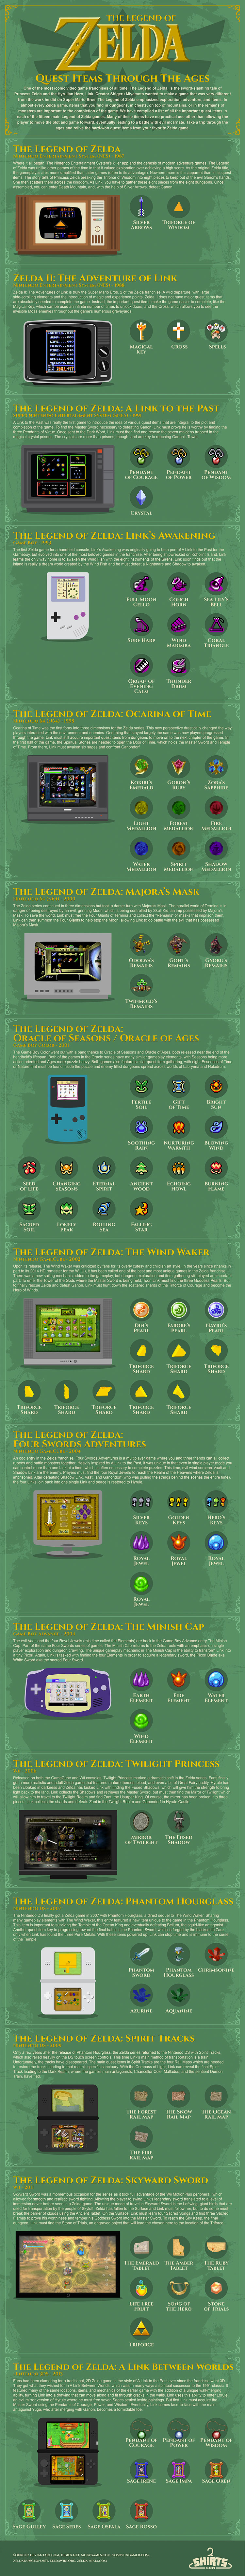 The Legend of Zelda: Quest Items Throughout the Ages